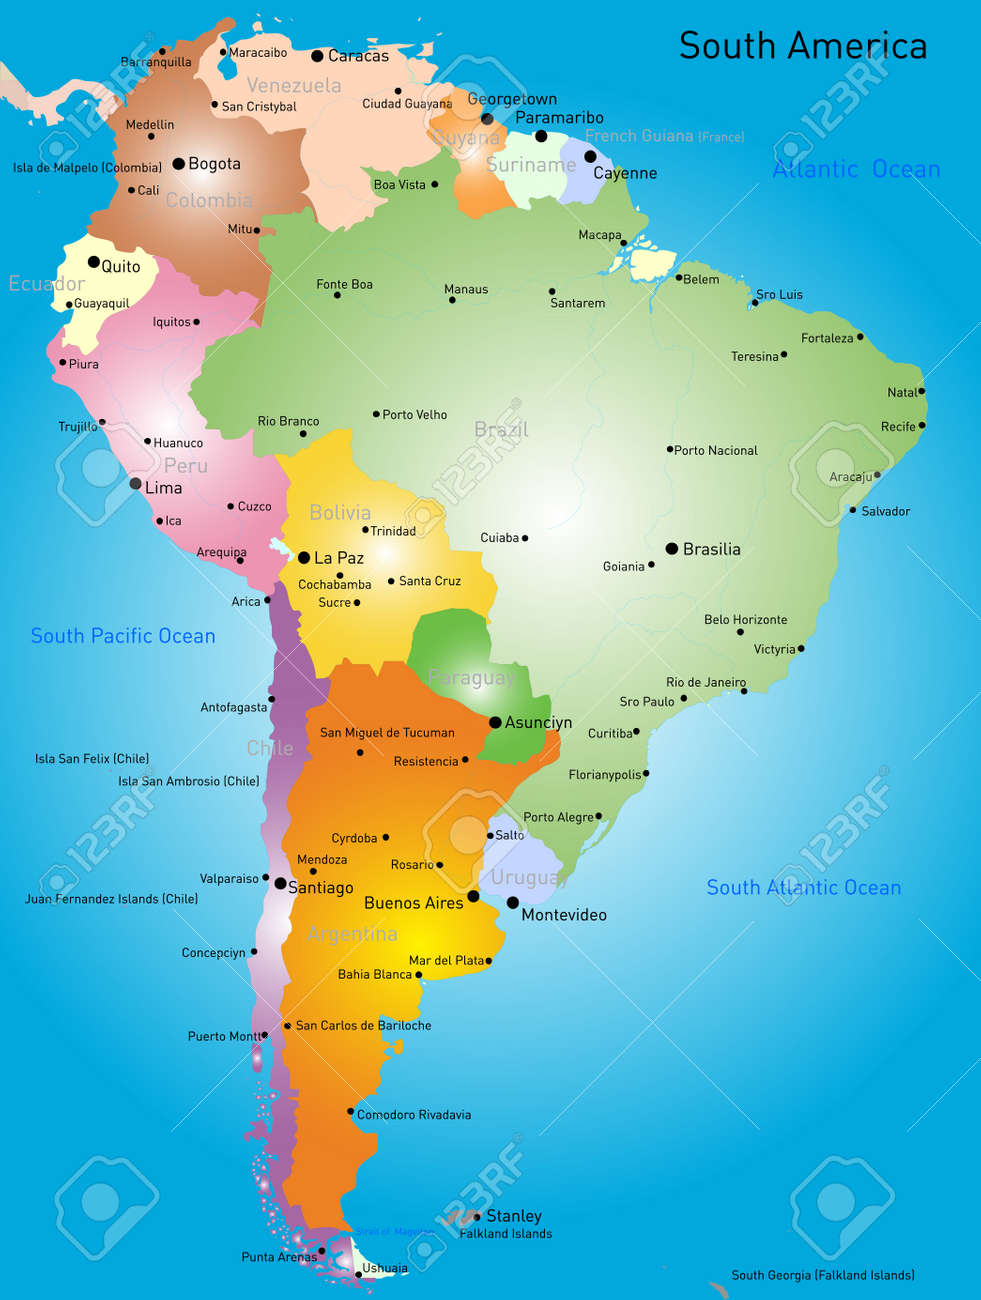 Vector Color Map Of South America Royalty Free Cliparts Vectors - Colored outline map of ecuador